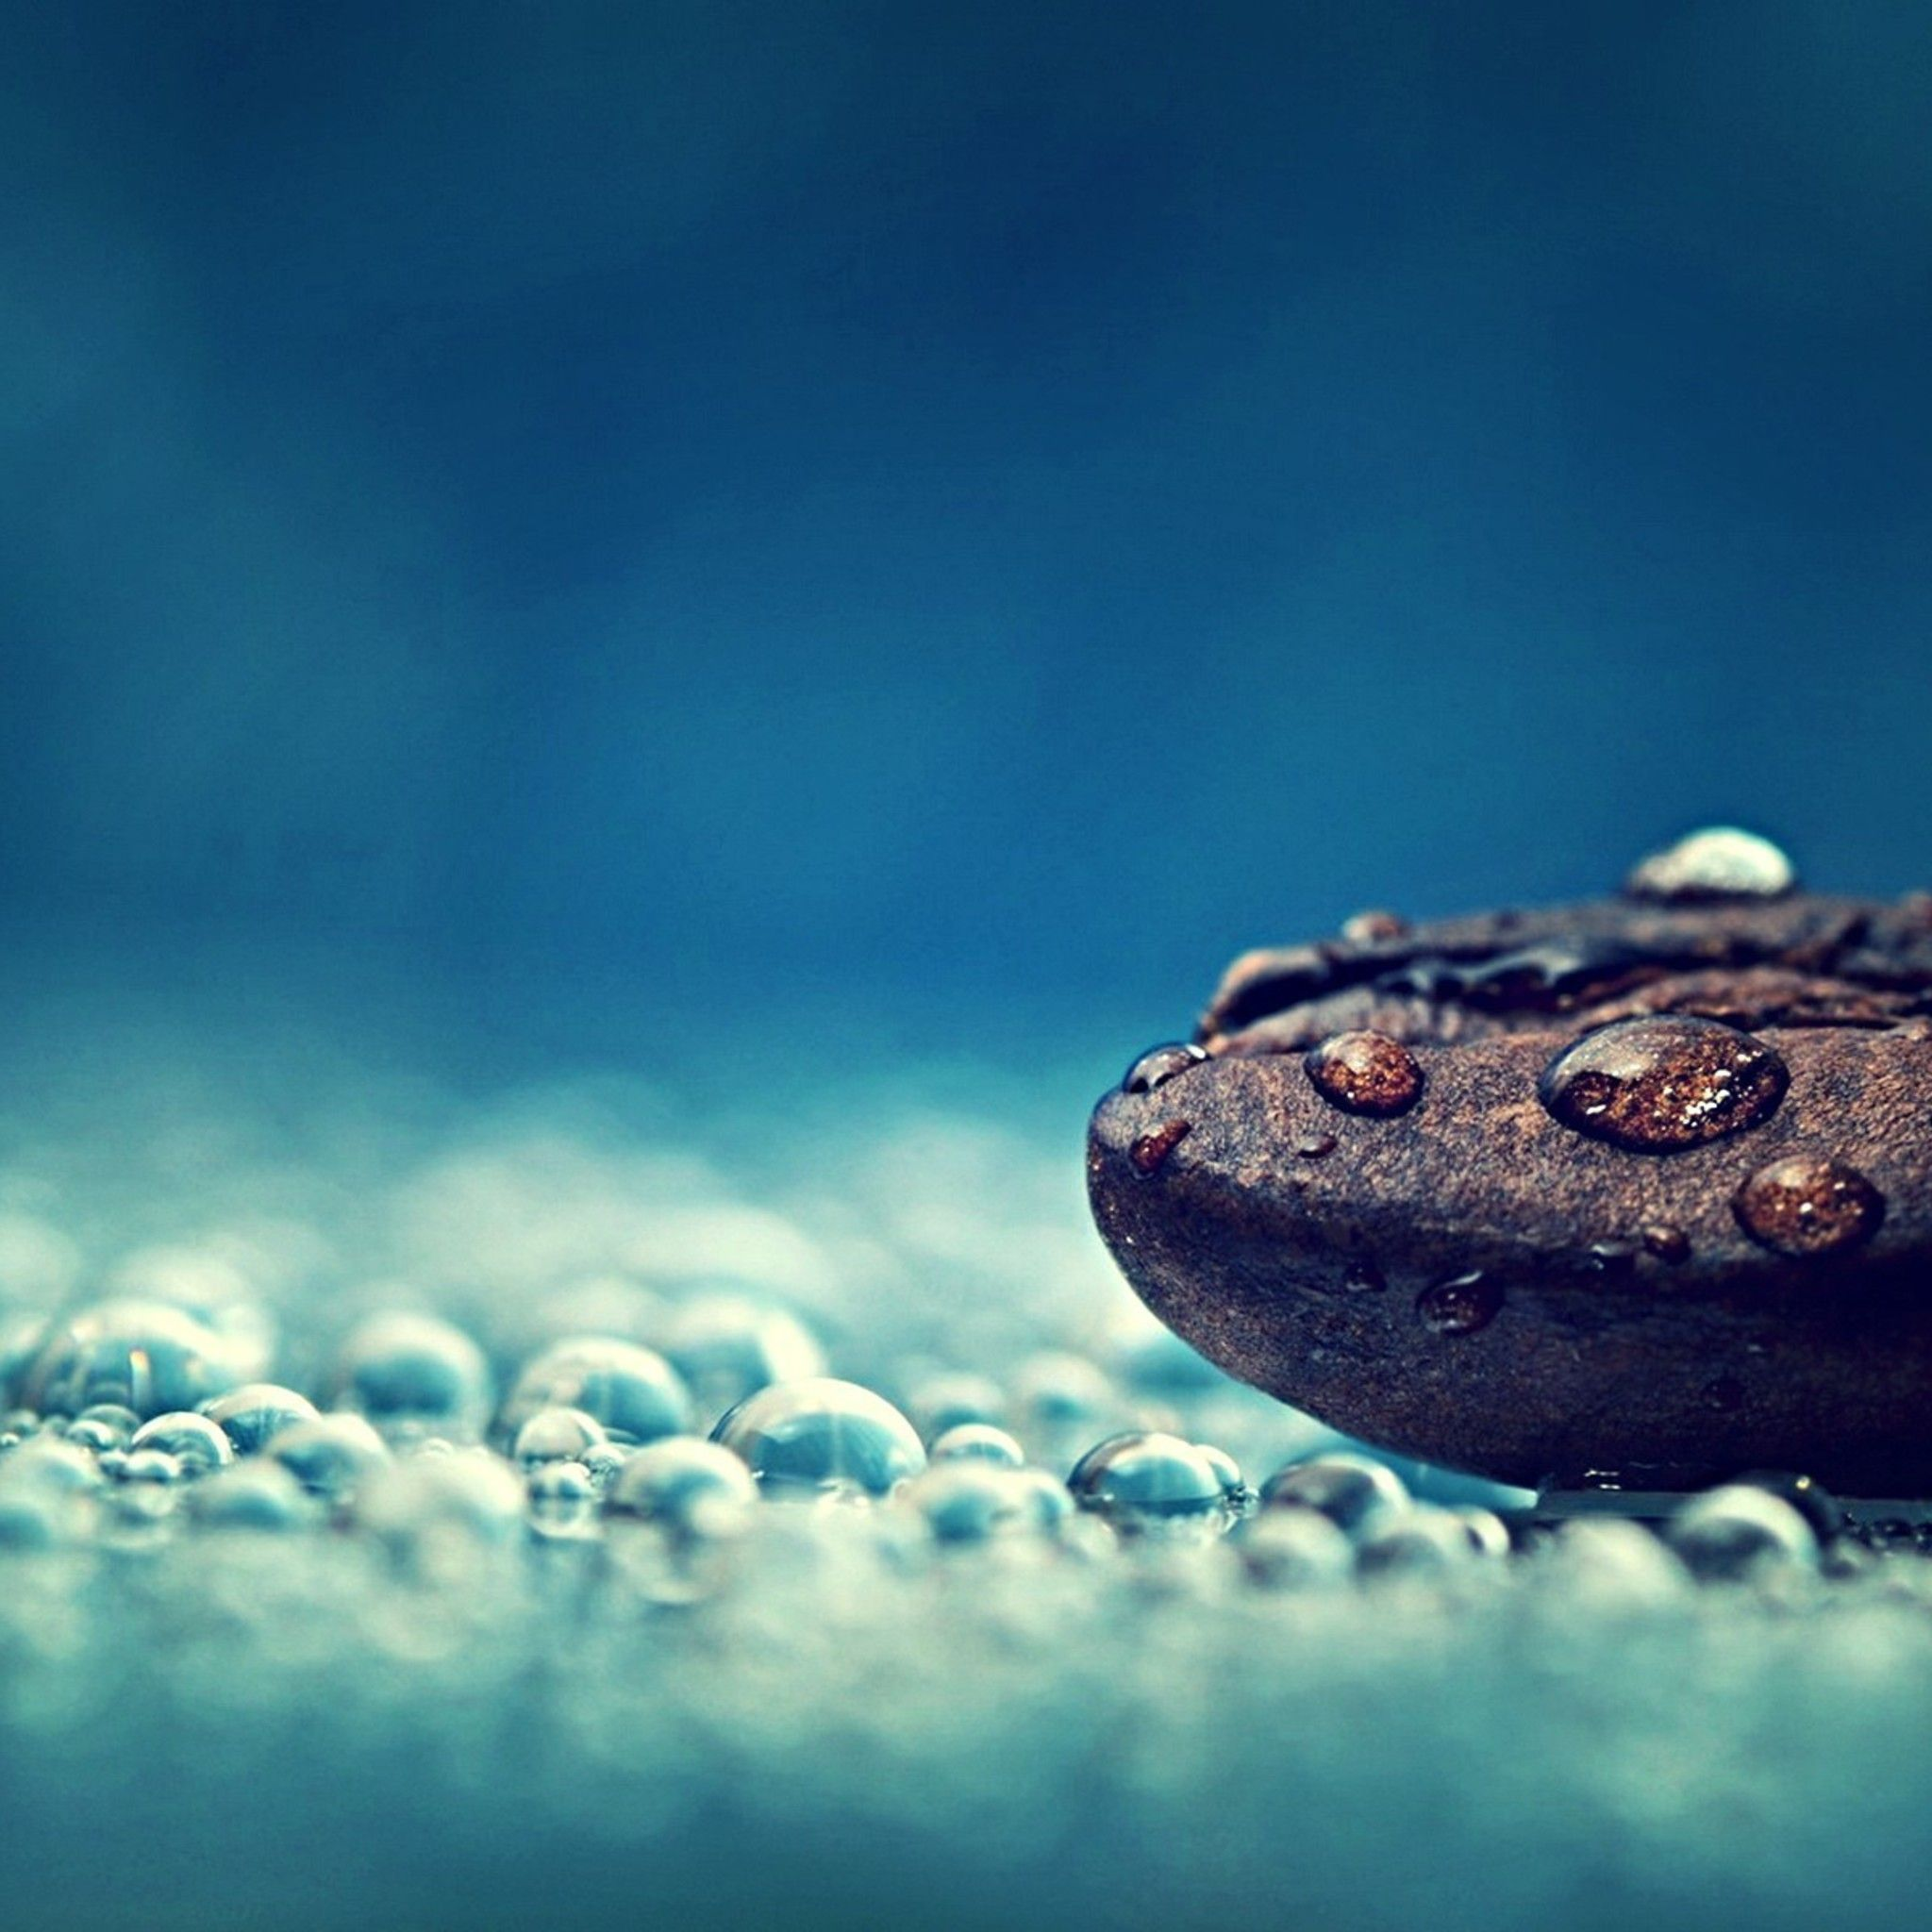 A Coffee Bean In The Rain Drops Tap To See Beautiful Abstract Nature Micro Wallpapers Mobile9 Nature Wallpaper Wallpaper Abstract Nature